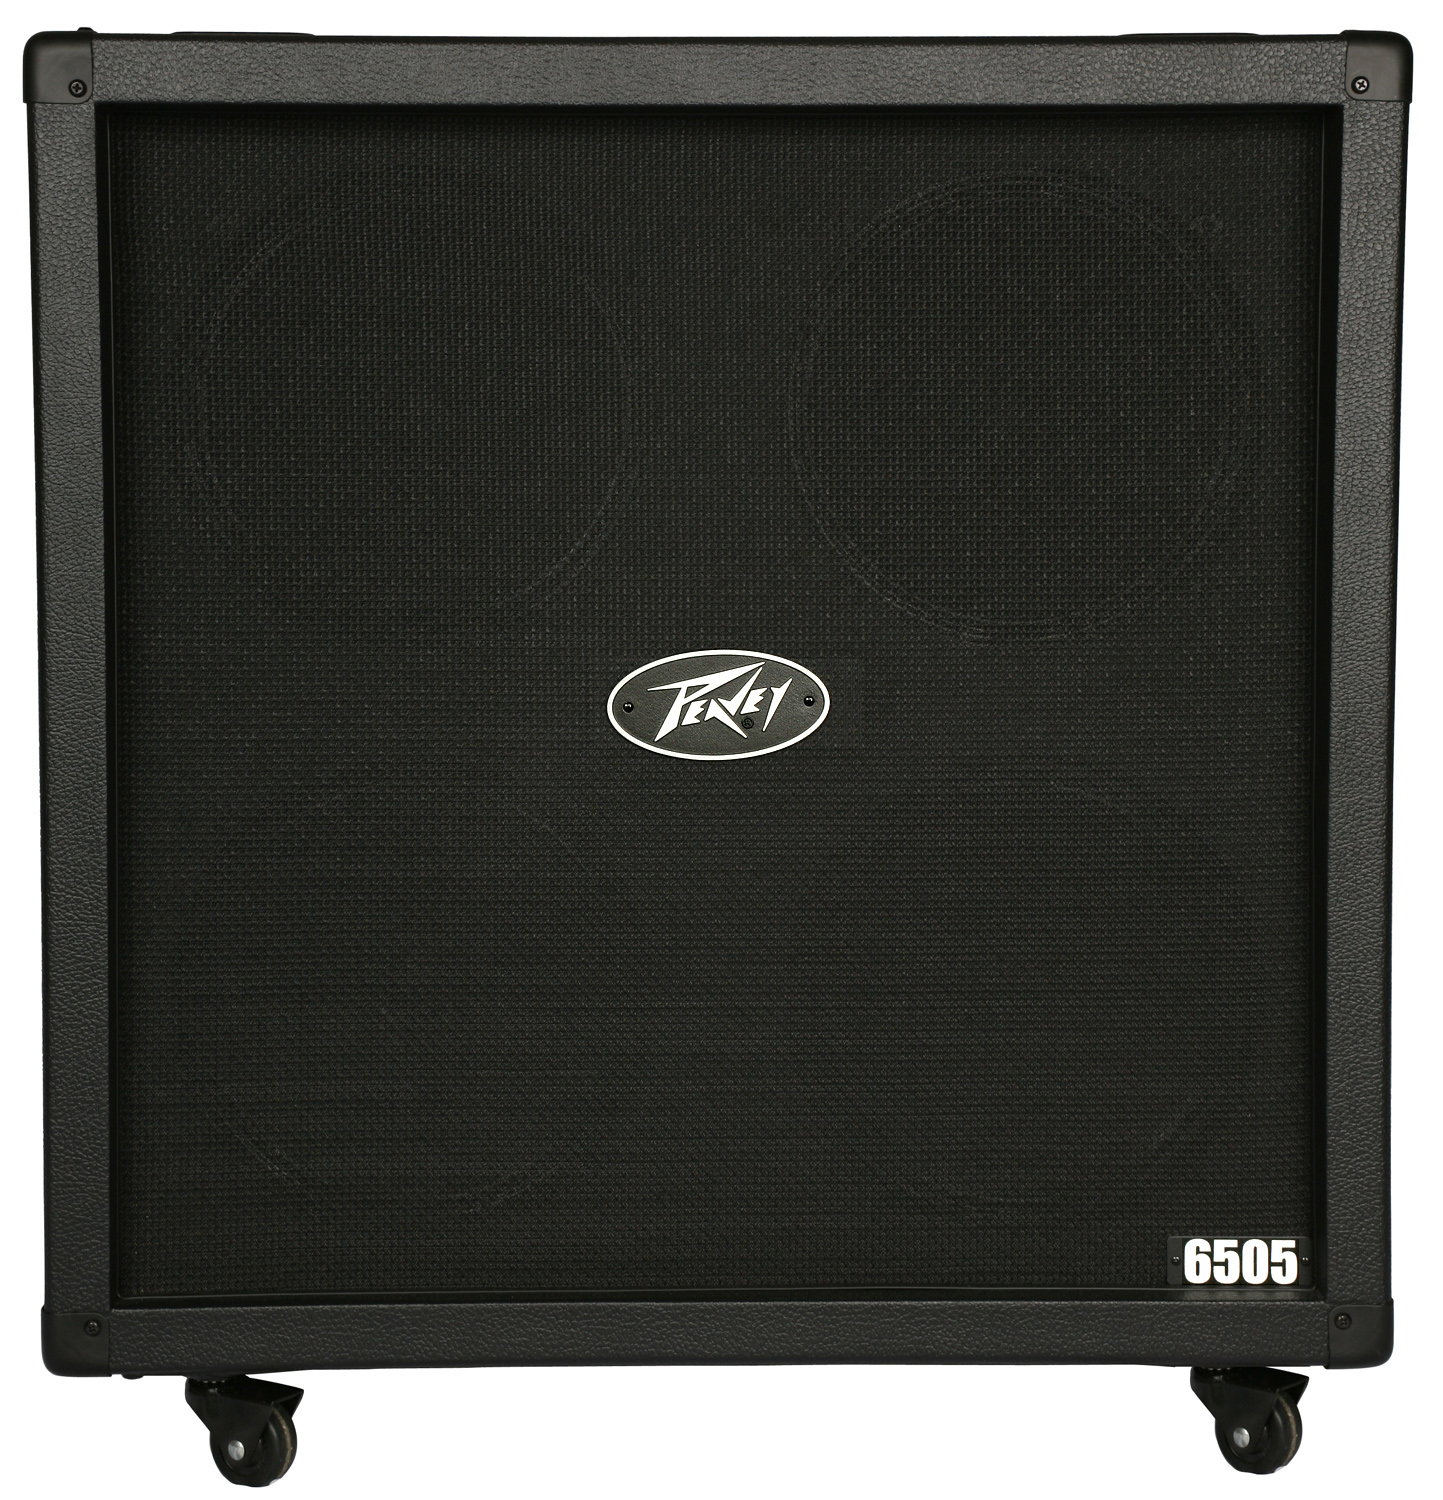 peavey 6505 412 straight cabinet 6534 plus amp head guitar package w cables pev16 package77. Black Bedroom Furniture Sets. Home Design Ideas